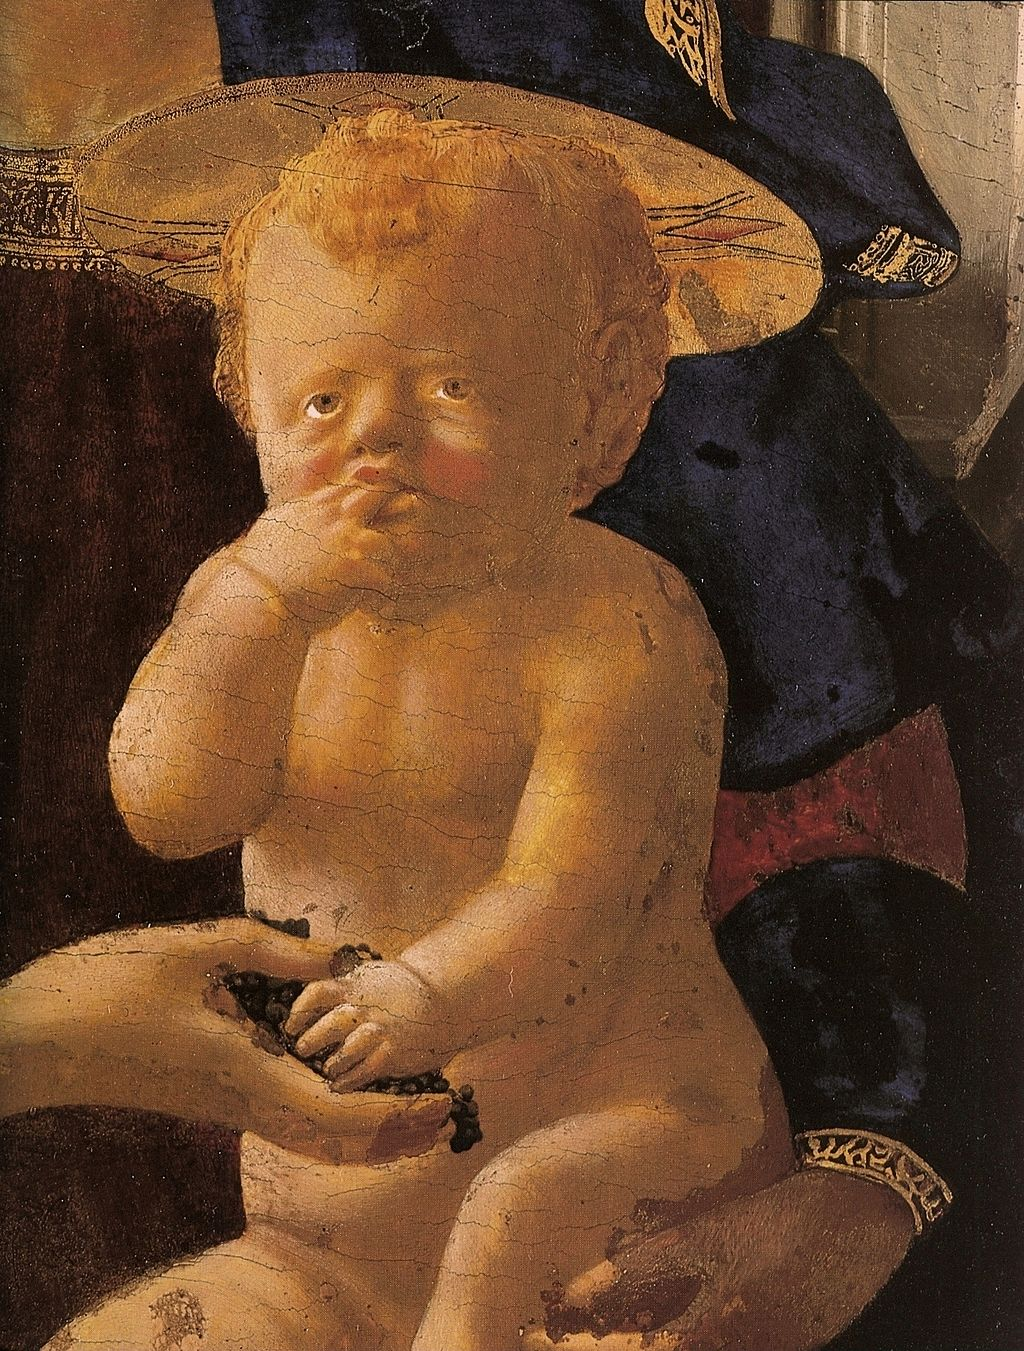 Masaccio, Madonna with Child and Angels (detail), 1426, egg tempera on poplar, 136 x 73 cm, National Gallery, London